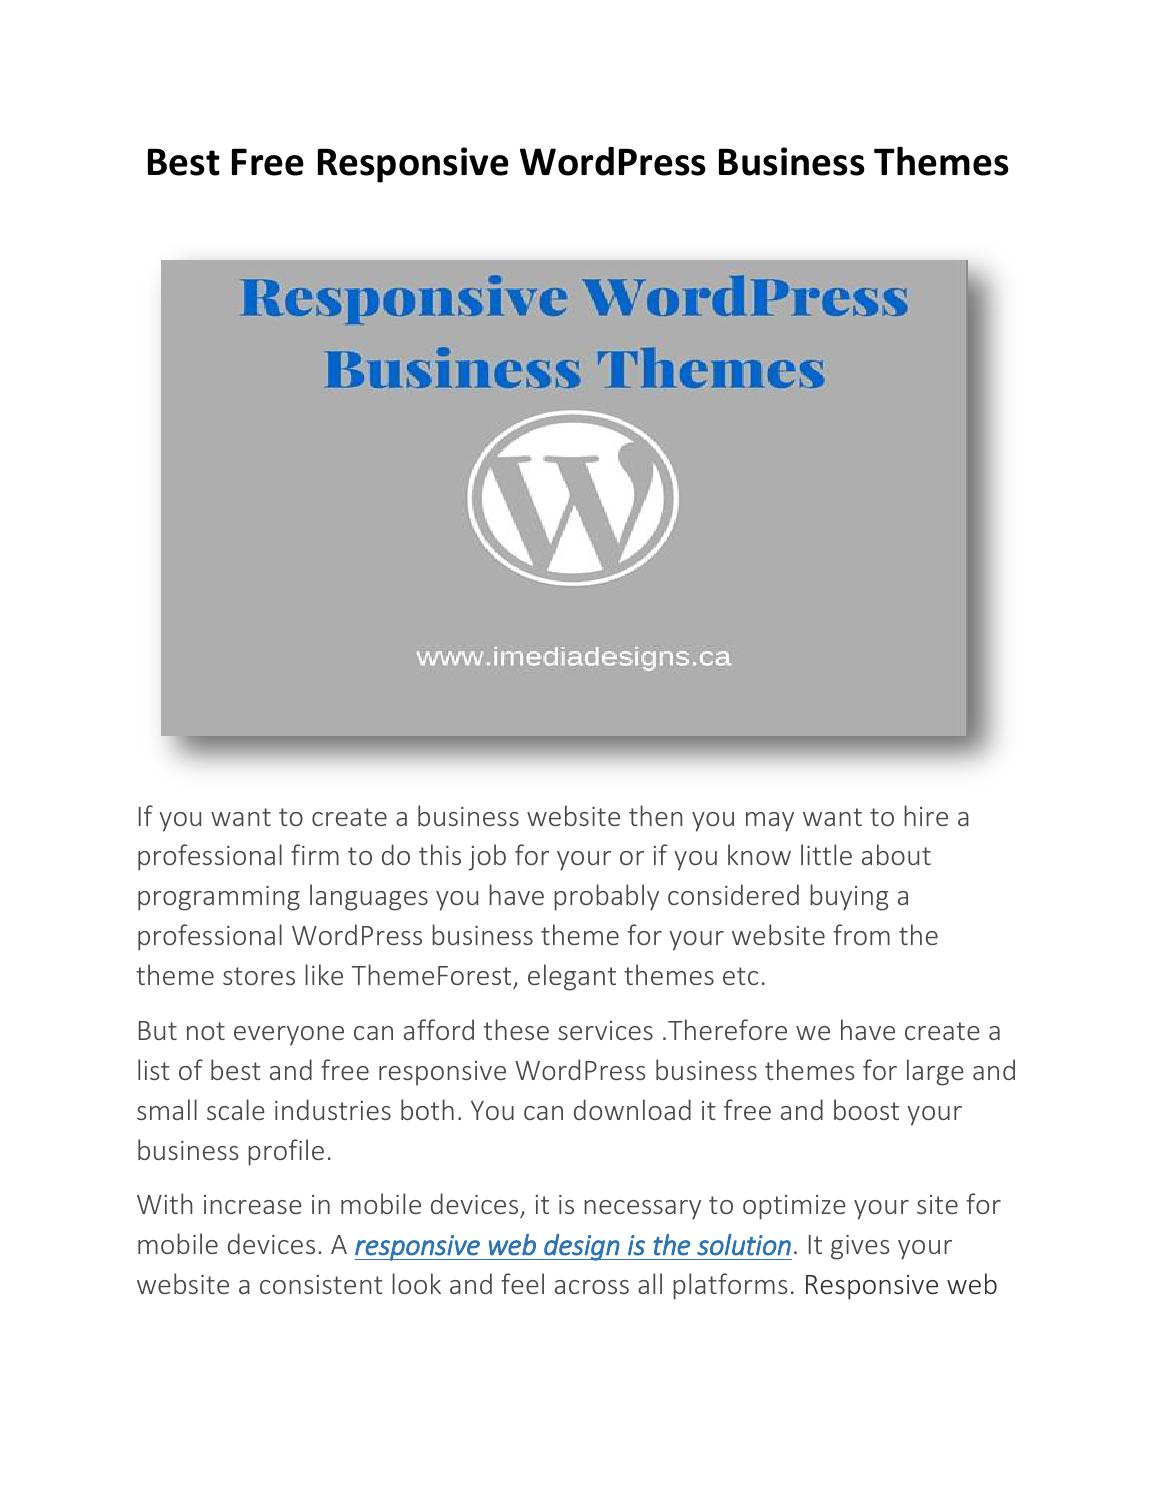 Best Free Responsive WordPress Business Themes by seo service